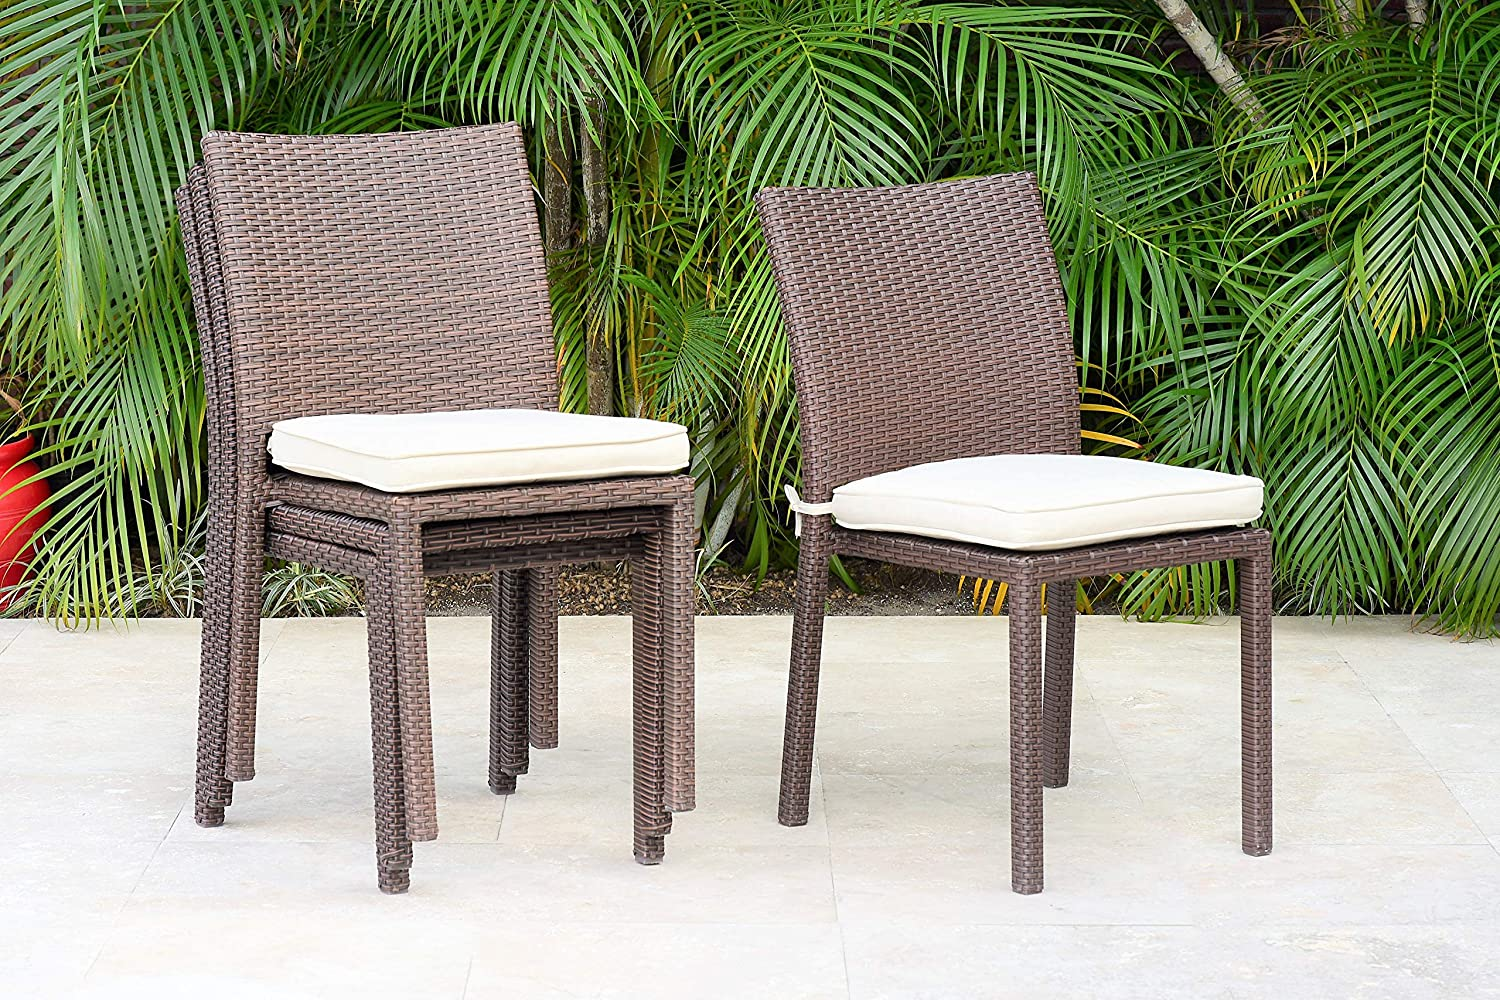 Atlantic Patio Liberty 4 Piece Patio Stackable Chairs Set Wicker Ideal For Outdoors And Indoors 25lx20wx36h Patio Dining Chairs Garden Outdoor Amazon Com